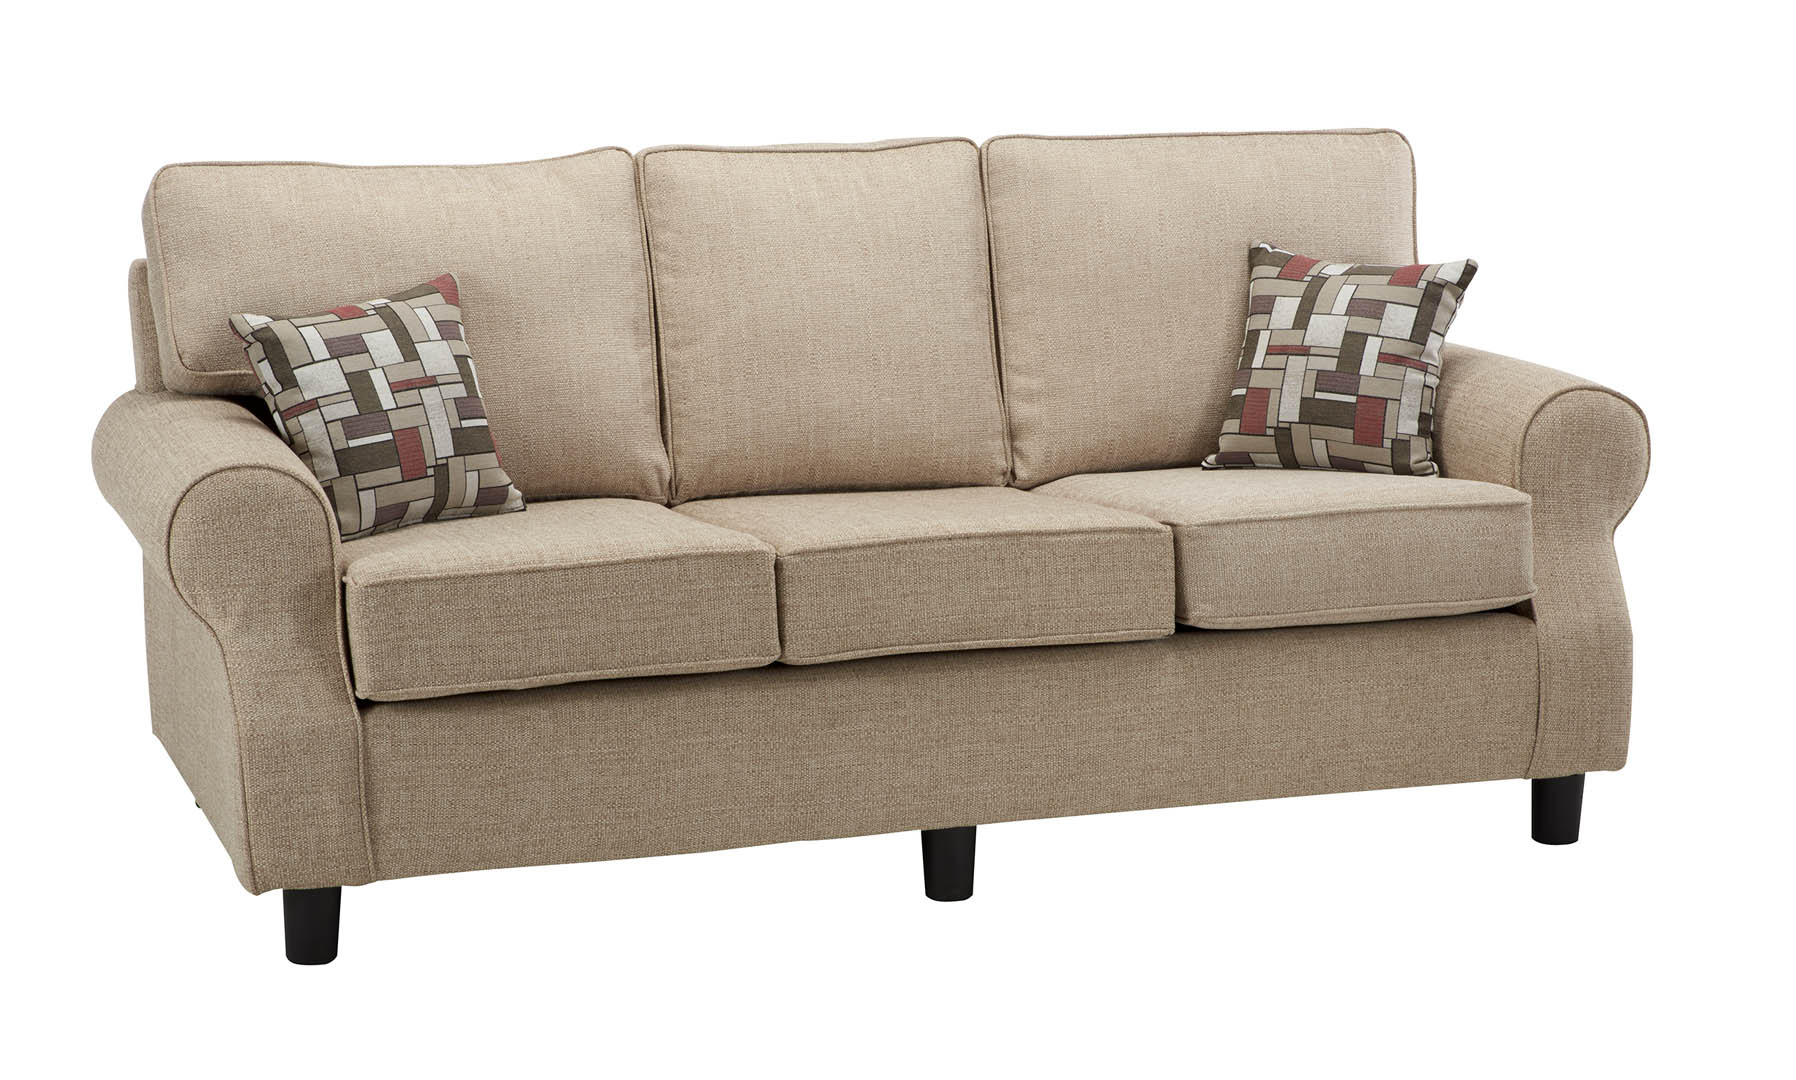 Karina 3 Seater Sofa - available as a 3 seater, 2 seater, chair and chaise.